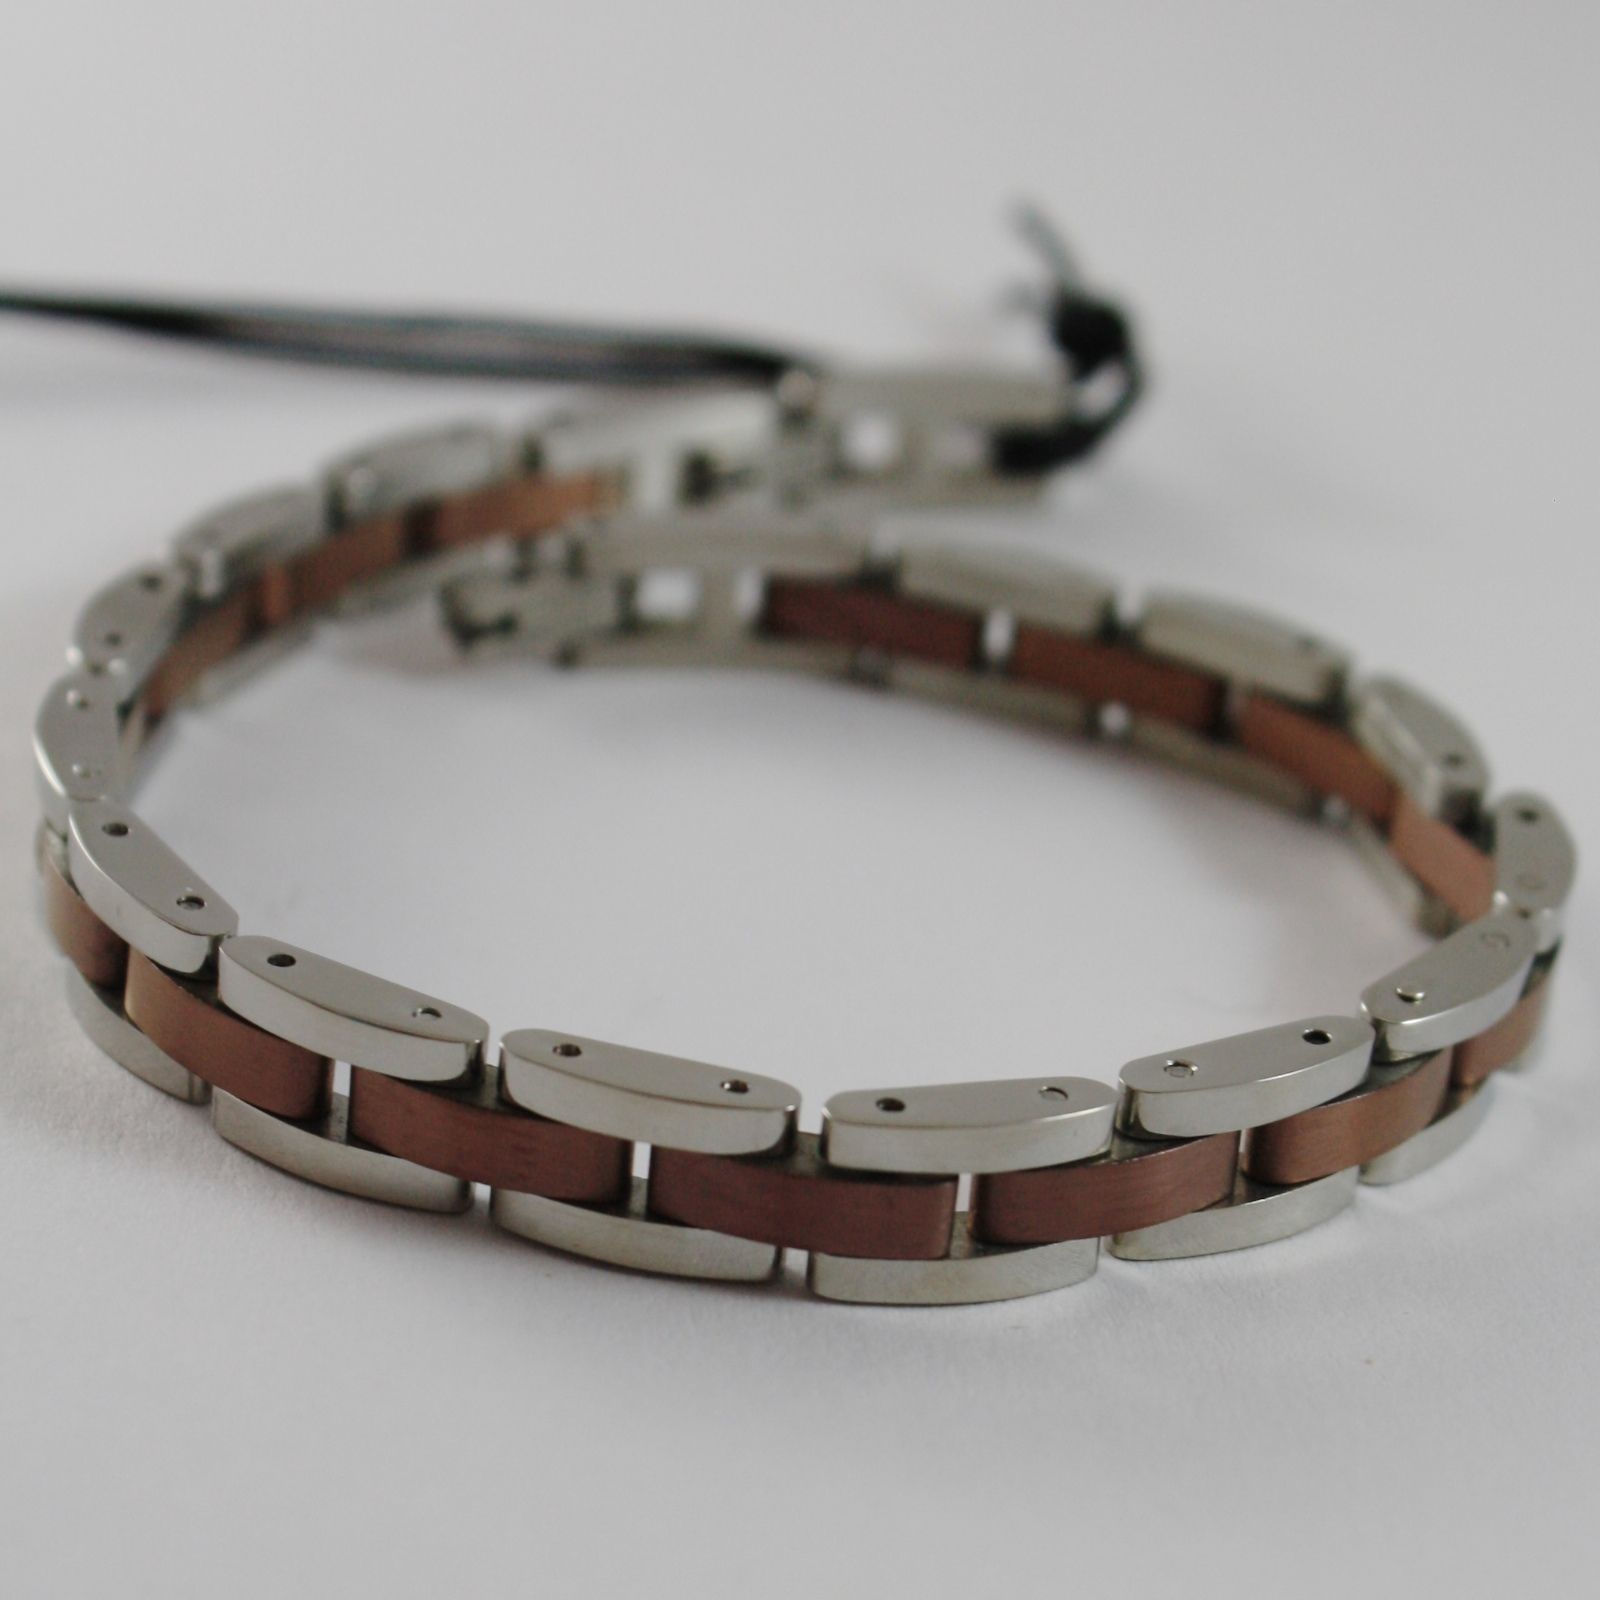 STEEL BRACELET WITH STEEL BURNISHED CESARE PACIOTTI 4US ARTICLE 4UBR1371